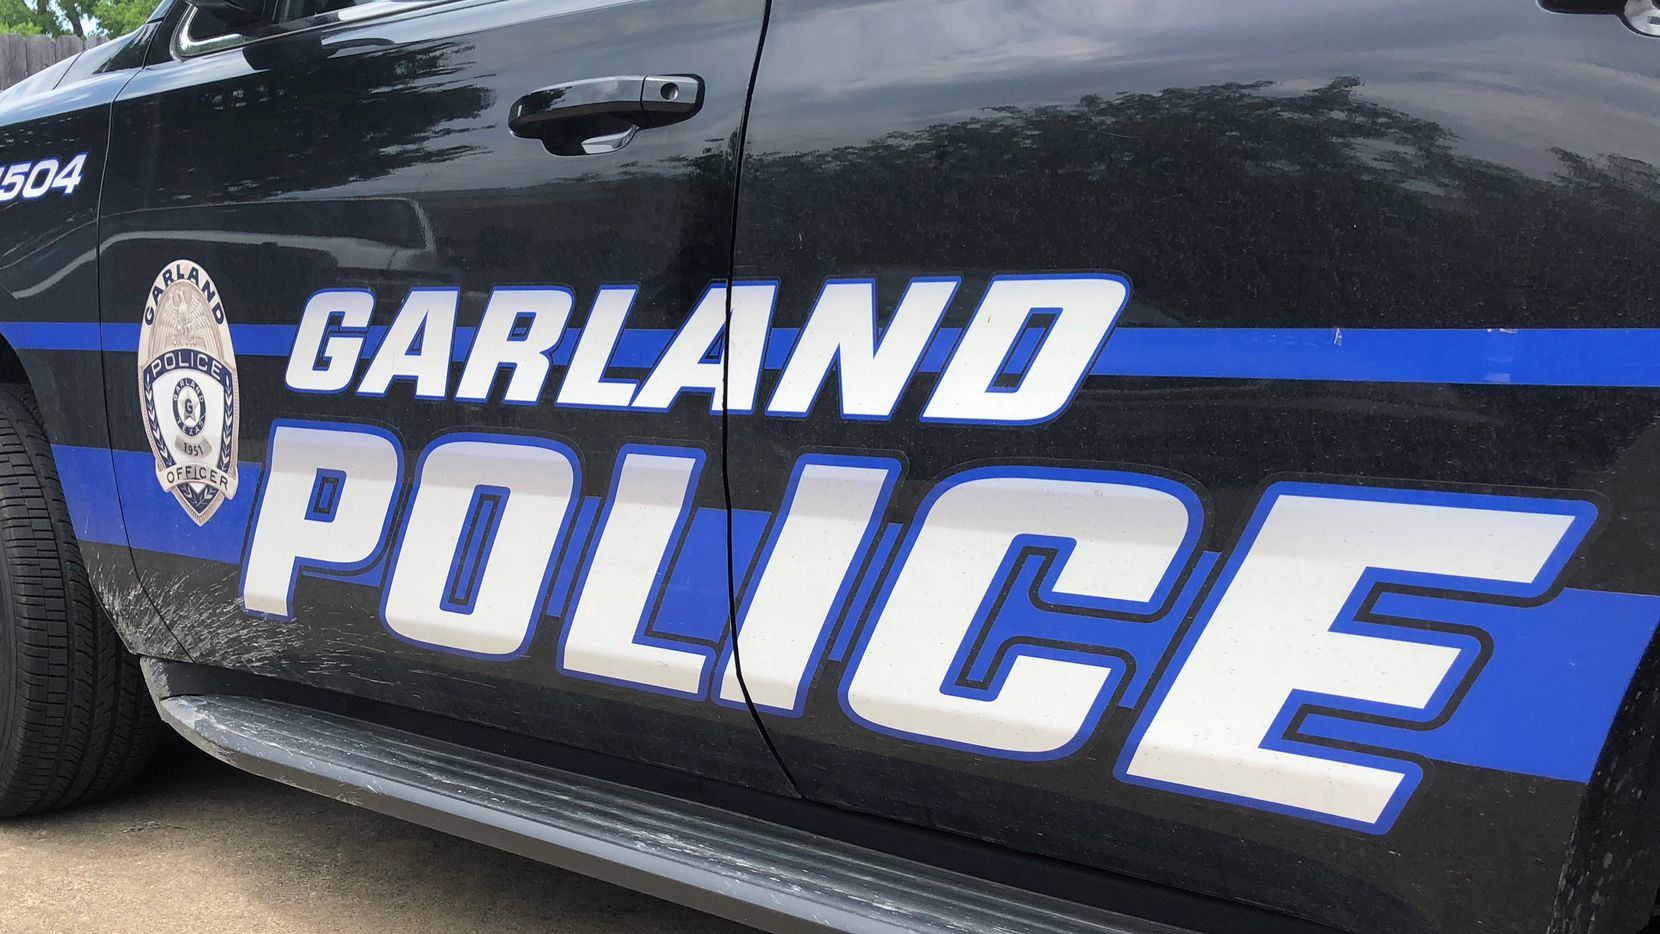 Garland police arrested 36 drivers who were charged with offenses related to driving while impaired during a 16-day period which included Garland ISD's spring break.